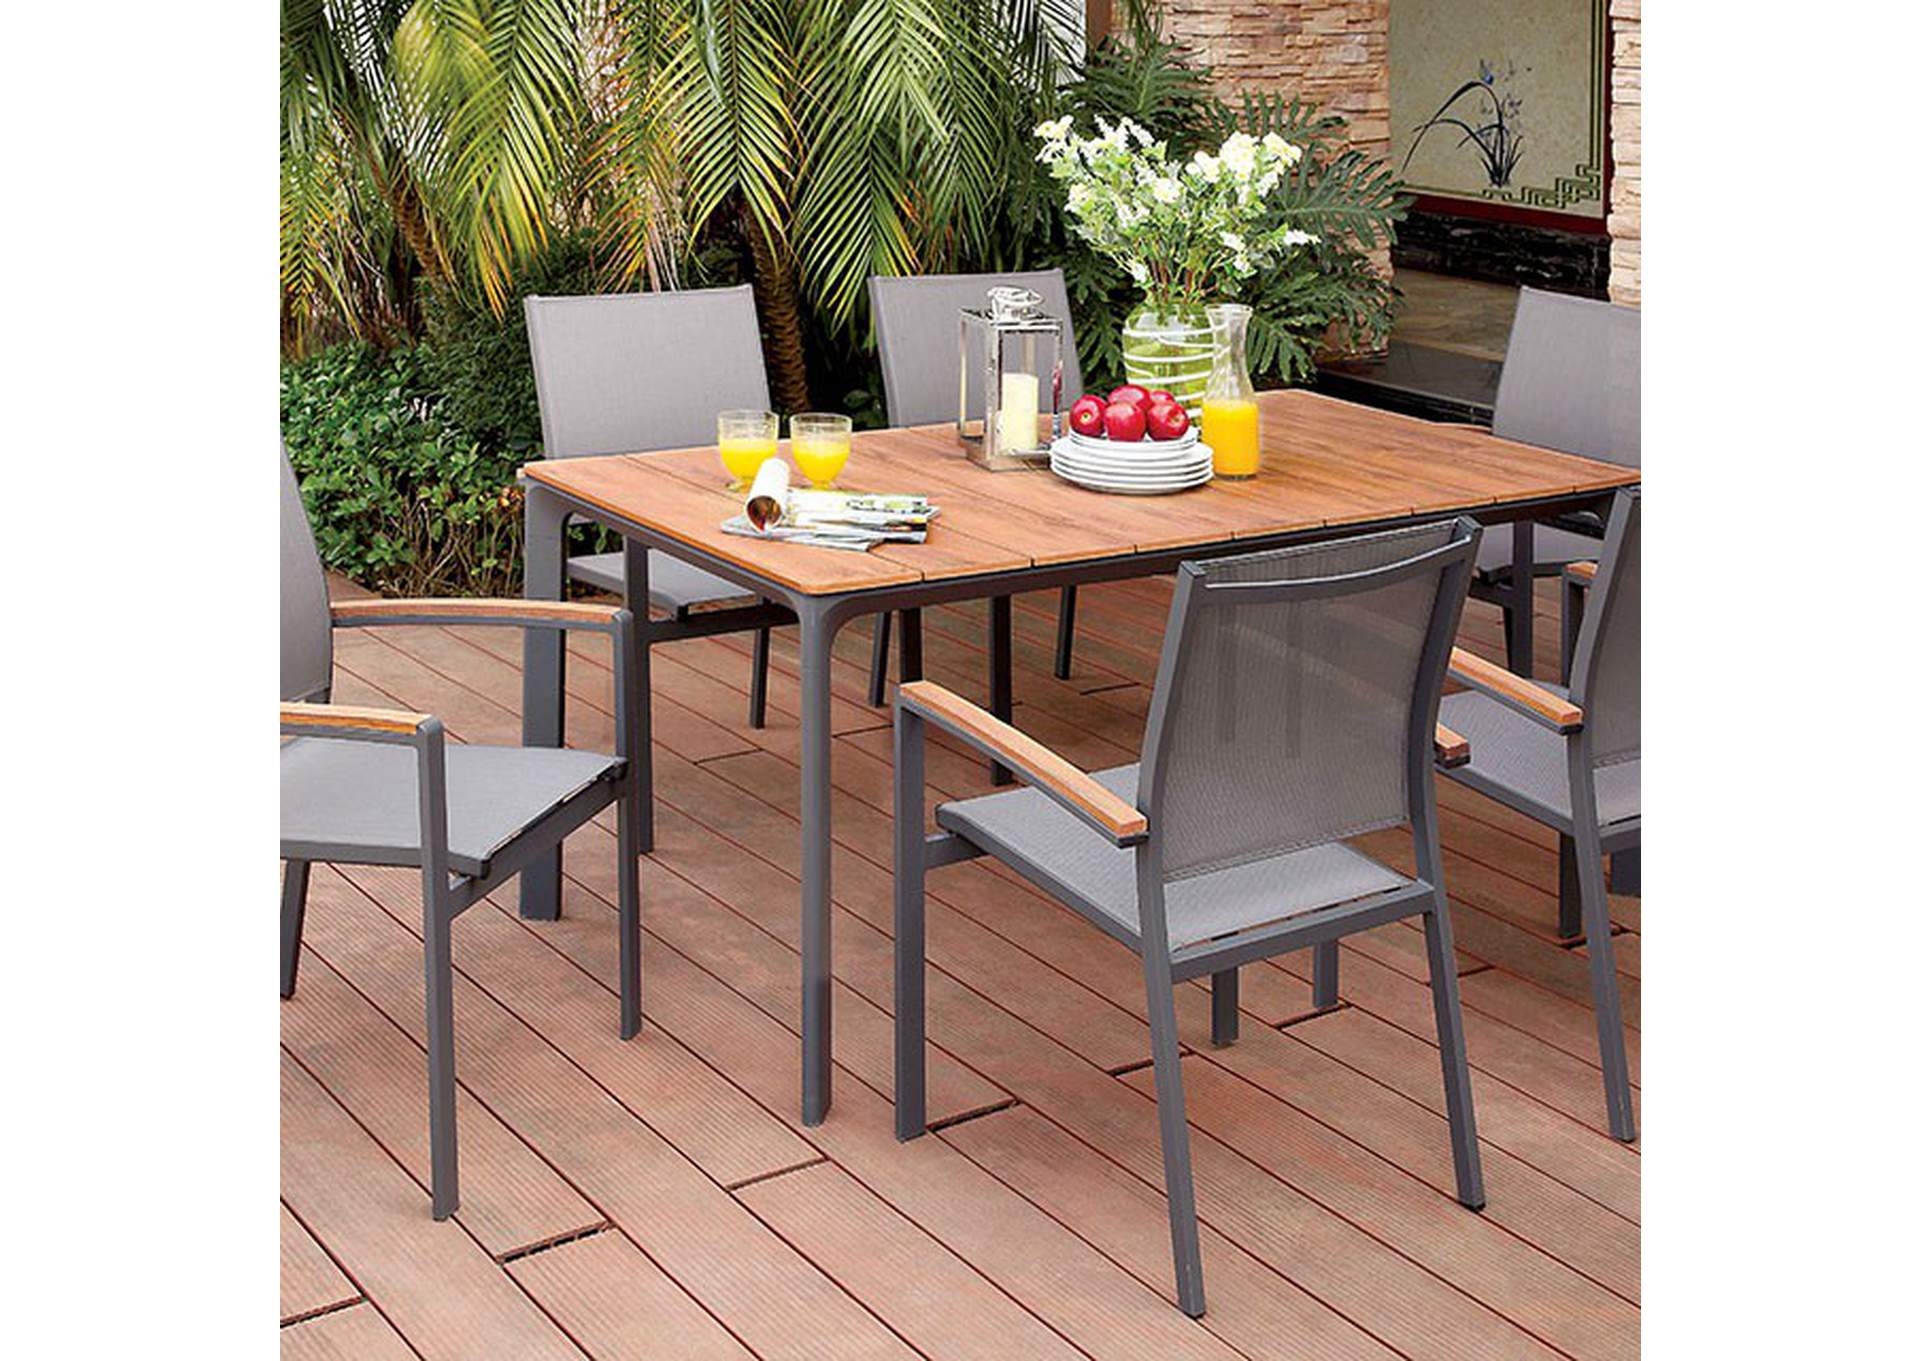 Oshawa Oak/Gray Patio Dining Table,Furniture of America